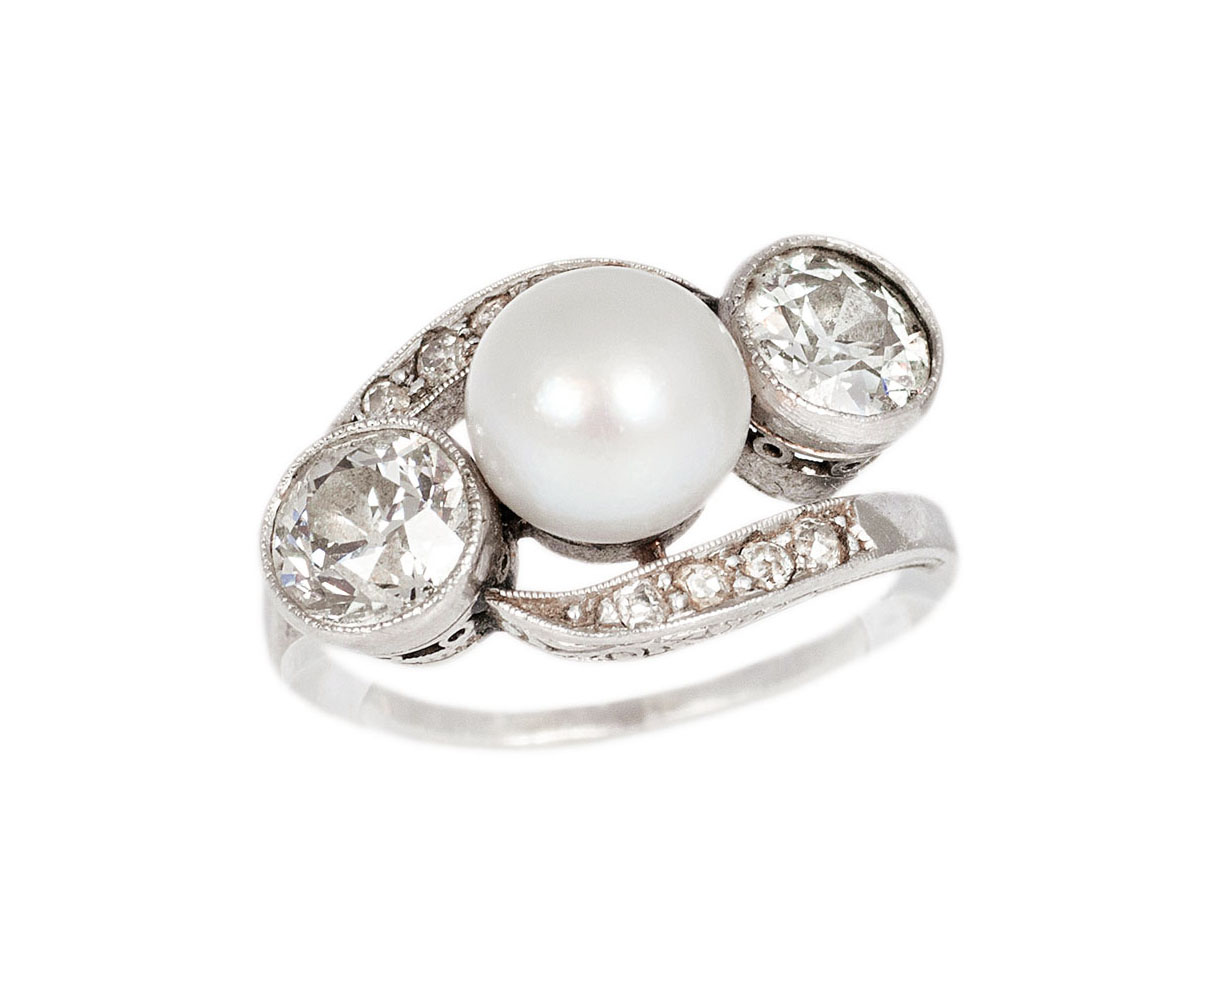 A diamond pearl ring